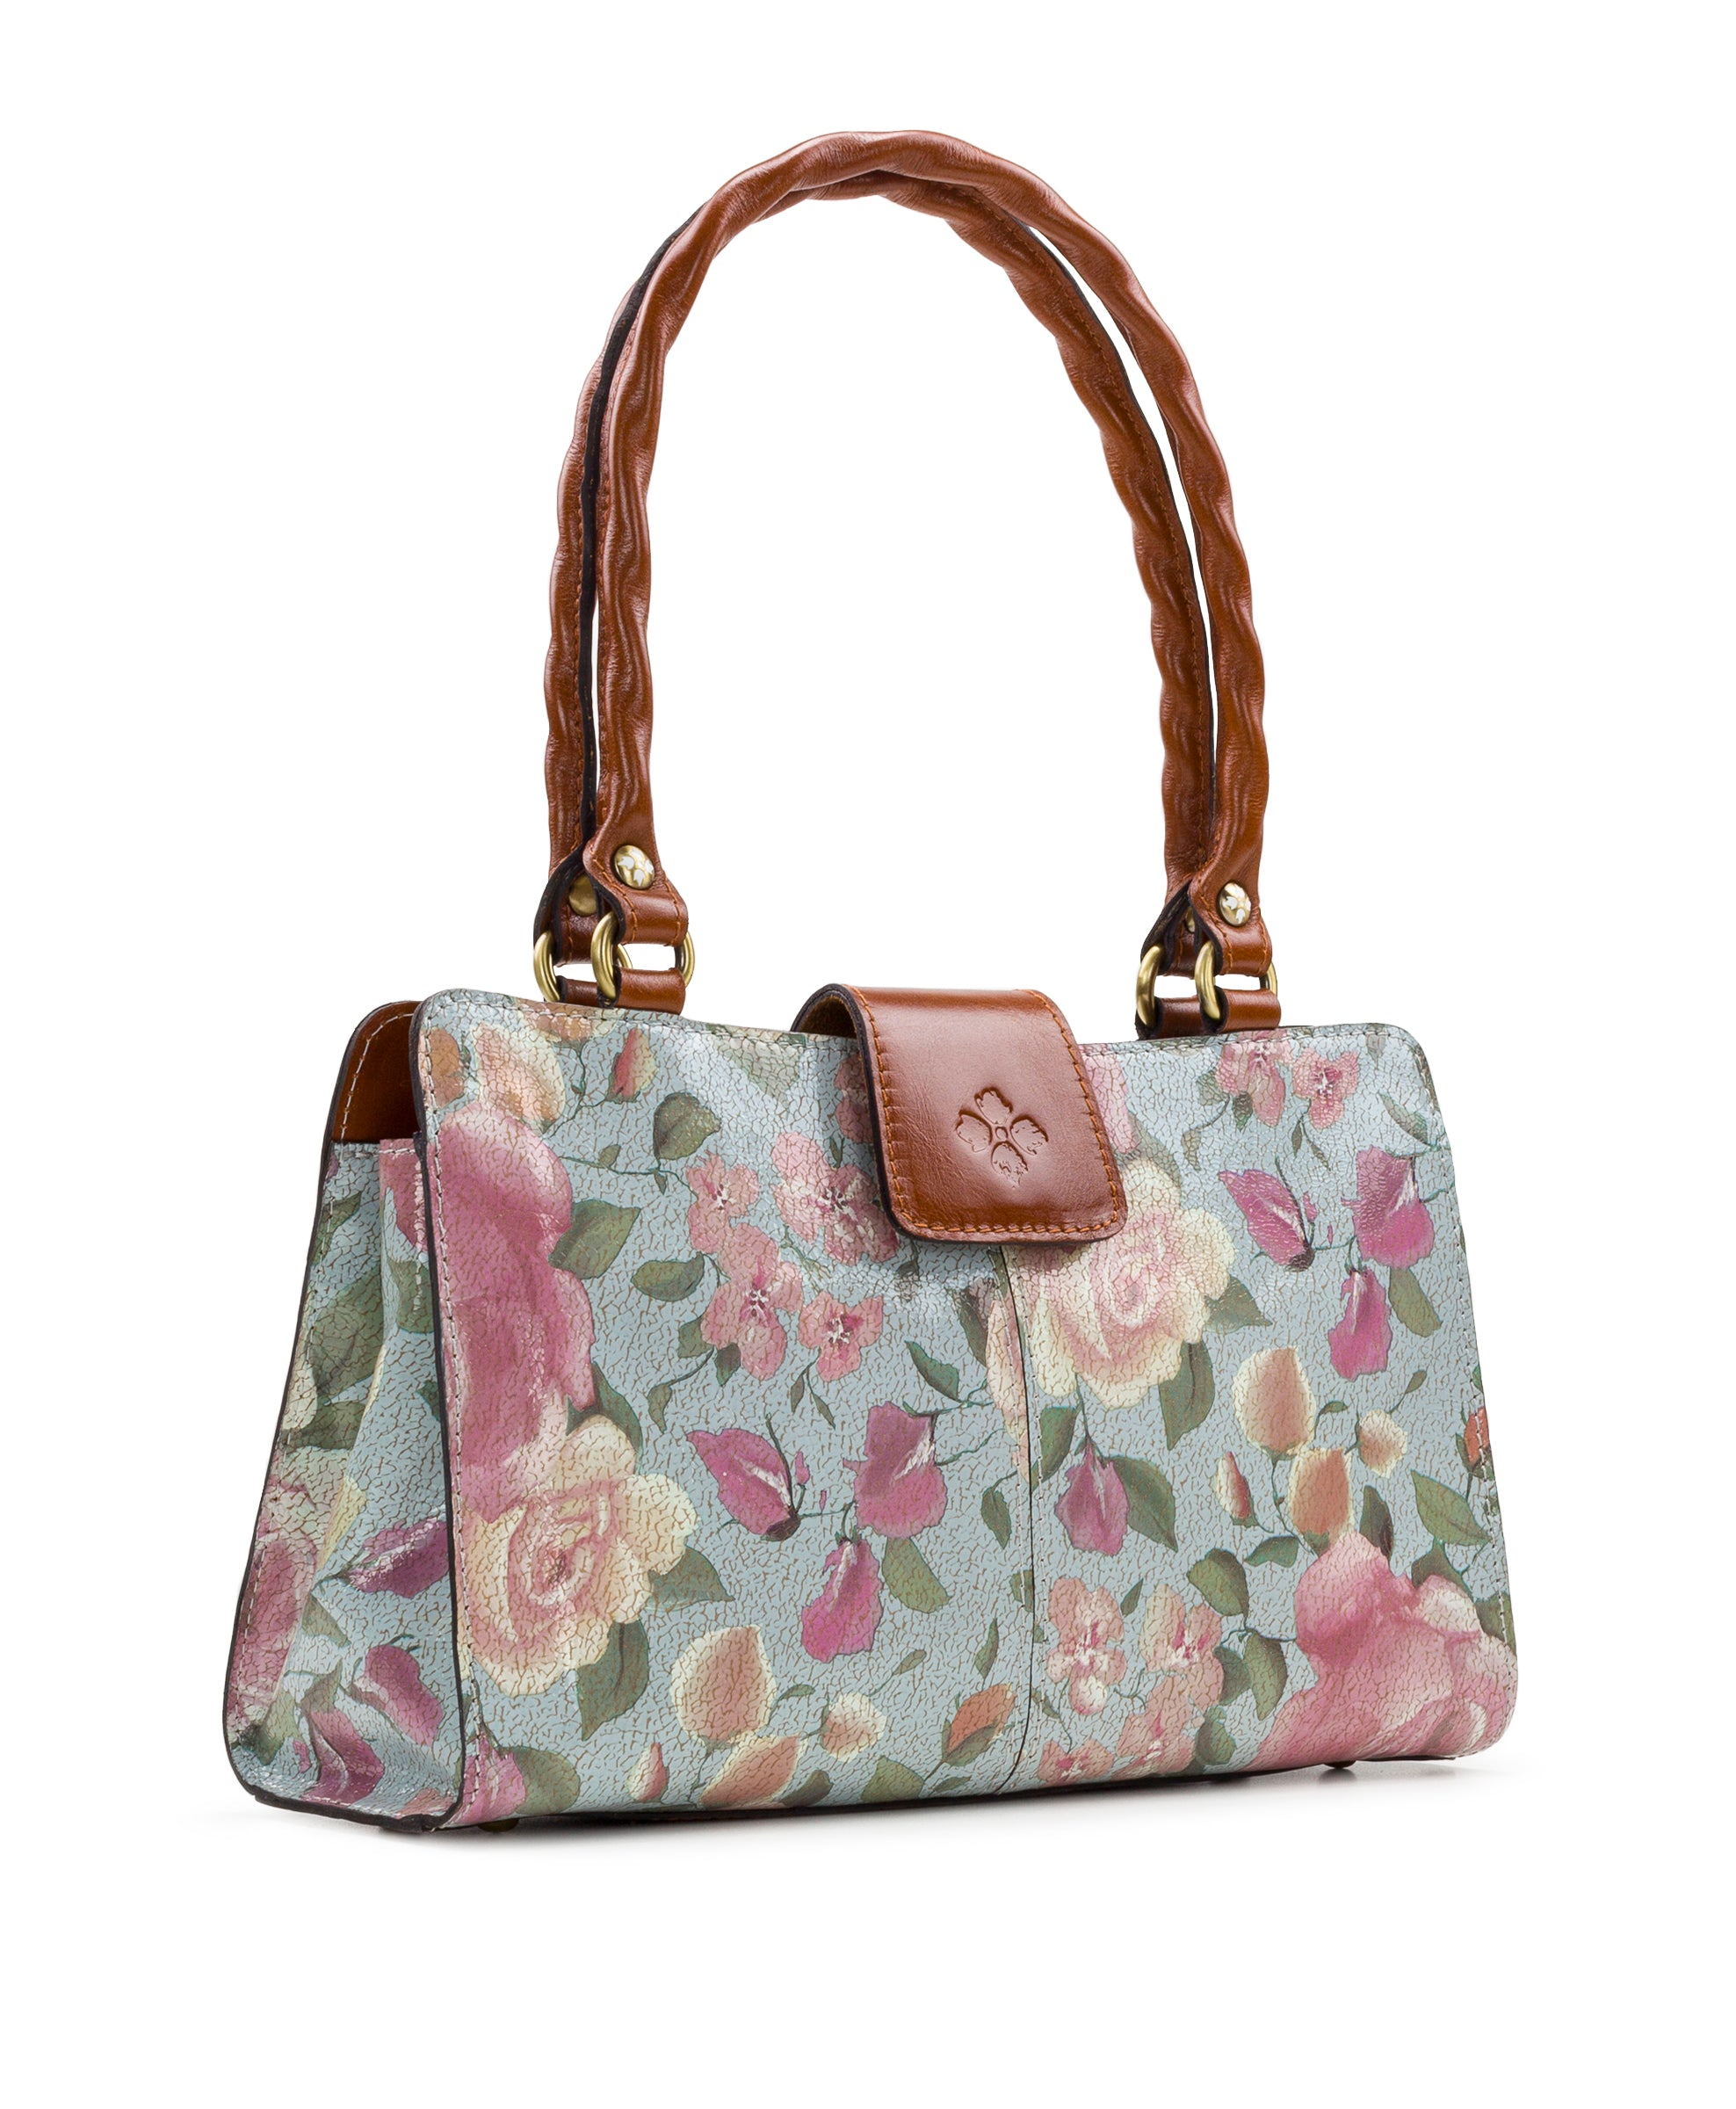 Rienzo Satchel - Crackled Rose 3